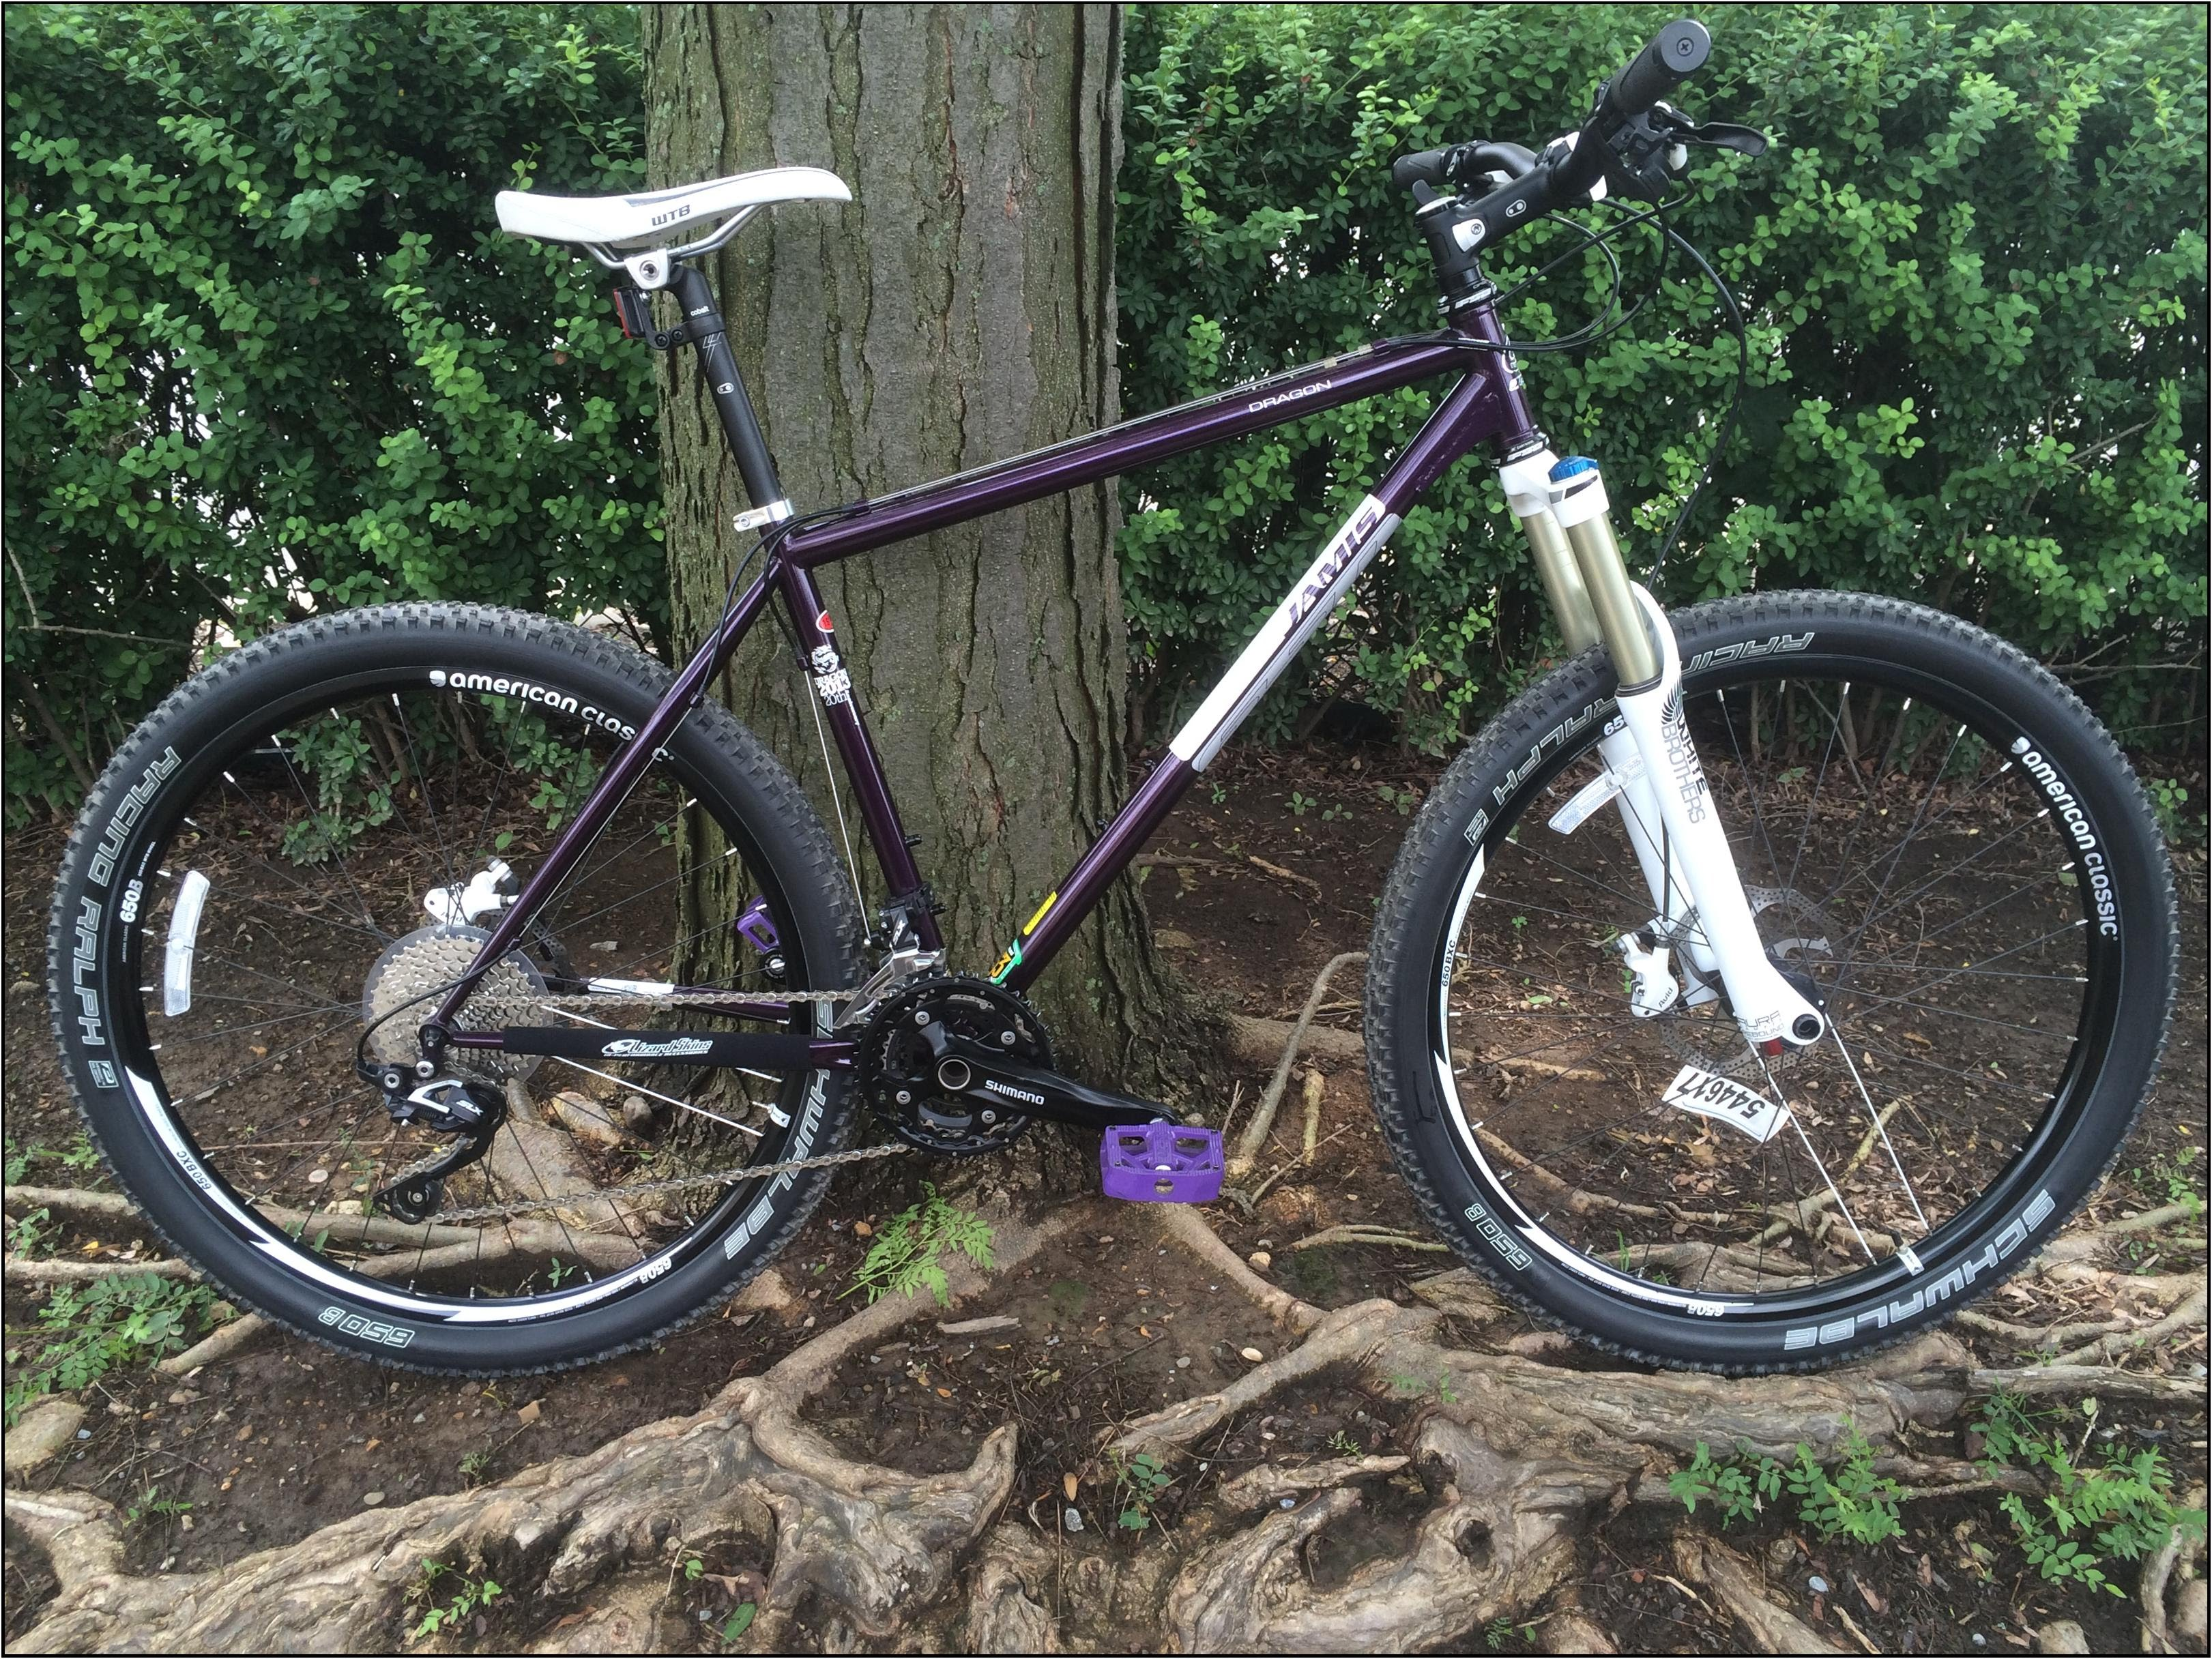 jamis dragon 650B trail mountain bike on sale